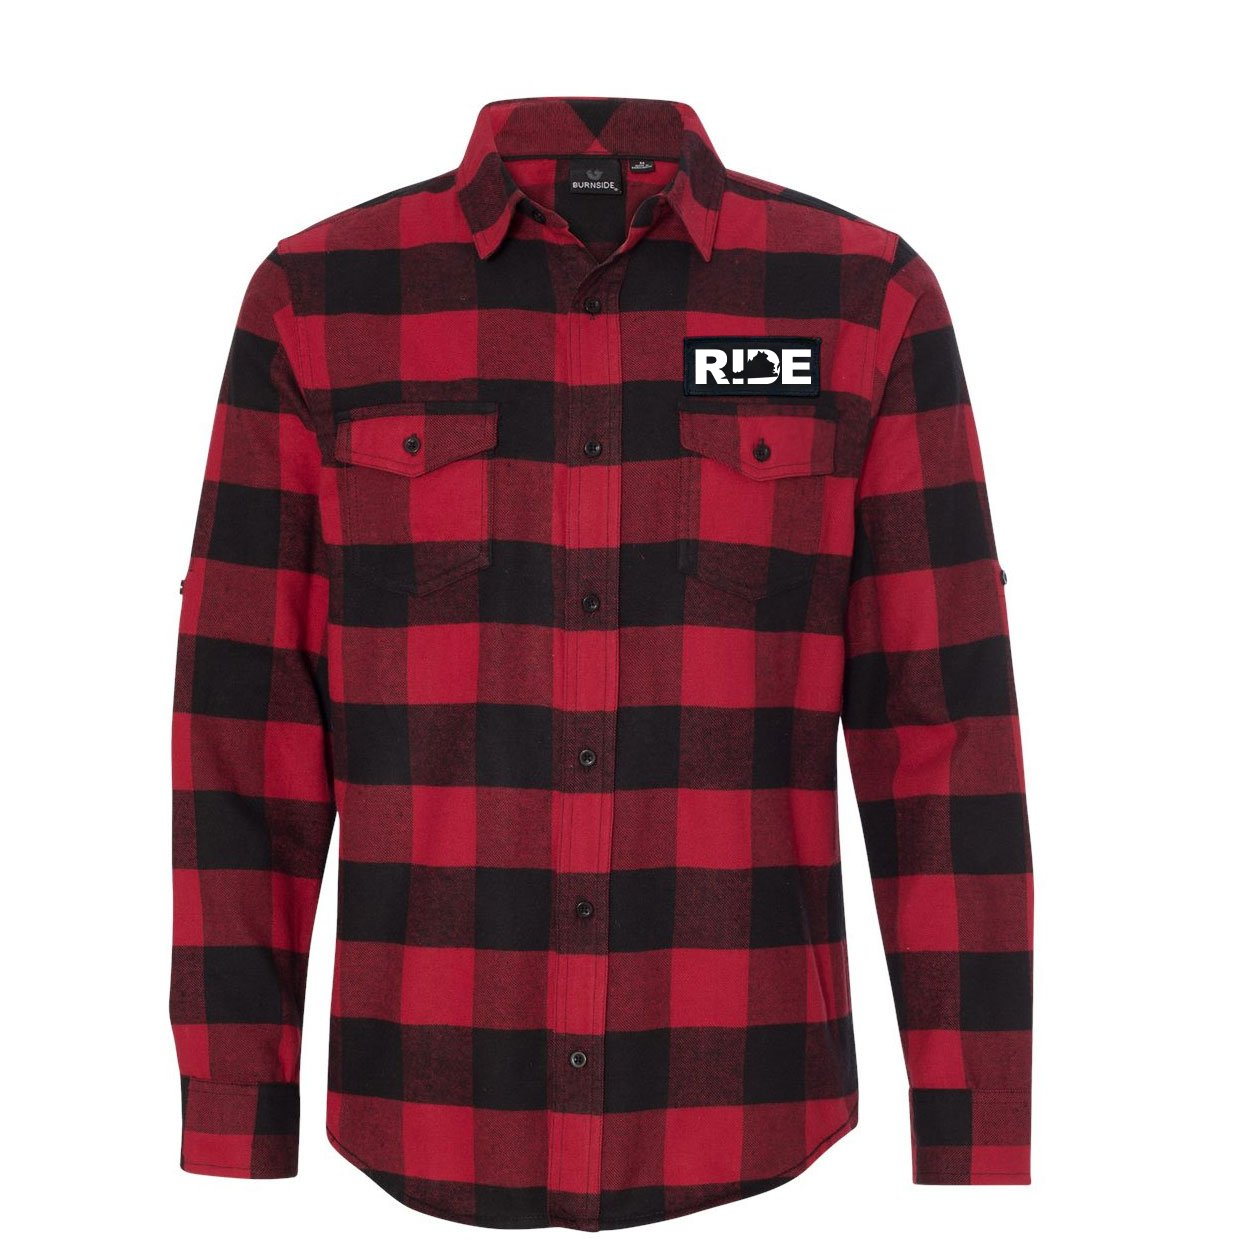 Ride Virginia Classic Unisex Long Sleeve Woven Patch Flannel Shirt Red/Black Buffalo (White Logo)